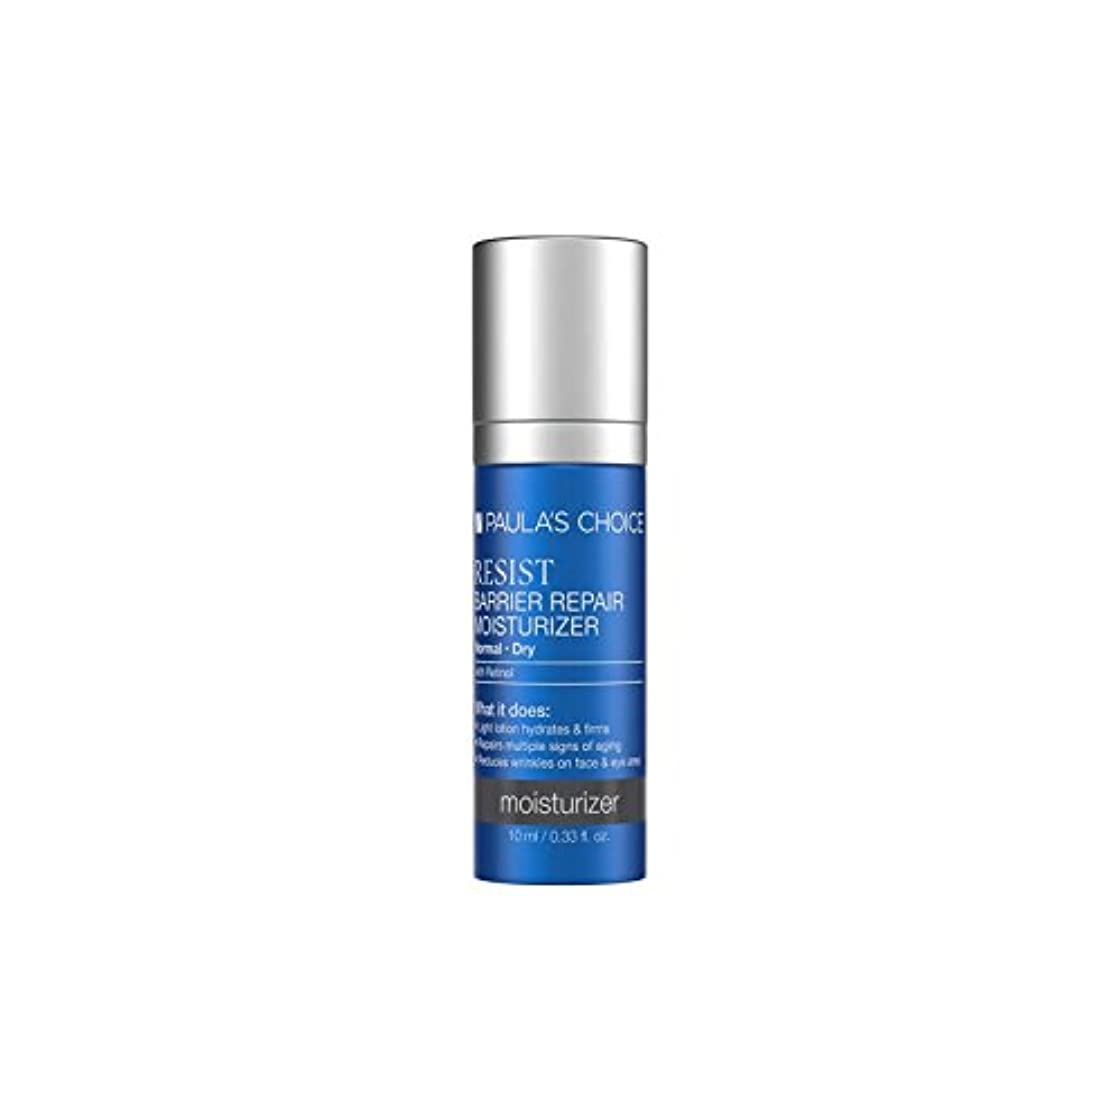 Paula's Choice Resist Barrier Repair Moisturizer With Retinol - Trial Size (10ml) (Pack of 6) - トライアルサイズ(10ミリリットル...